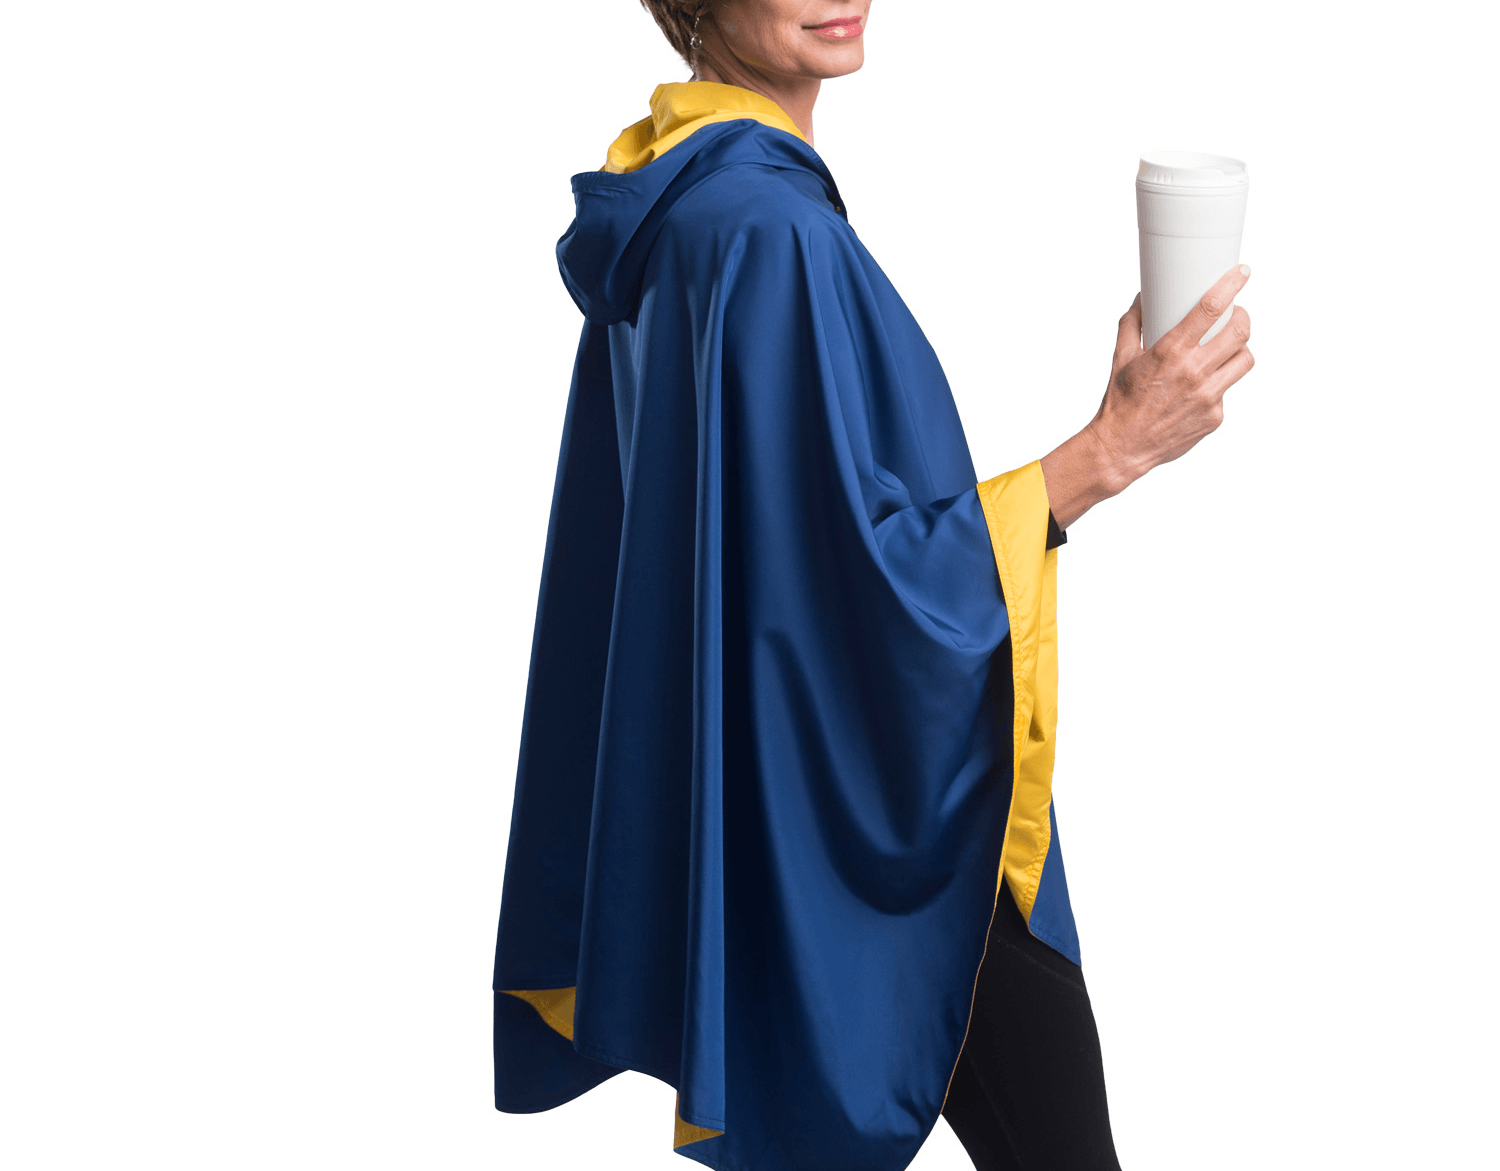 Woman wearing a Navy Blue & Gold Wind & Rainproof Sports Cape with the Navy Blue side out, revealing the Gold print at the lapels,neckline and cuffs